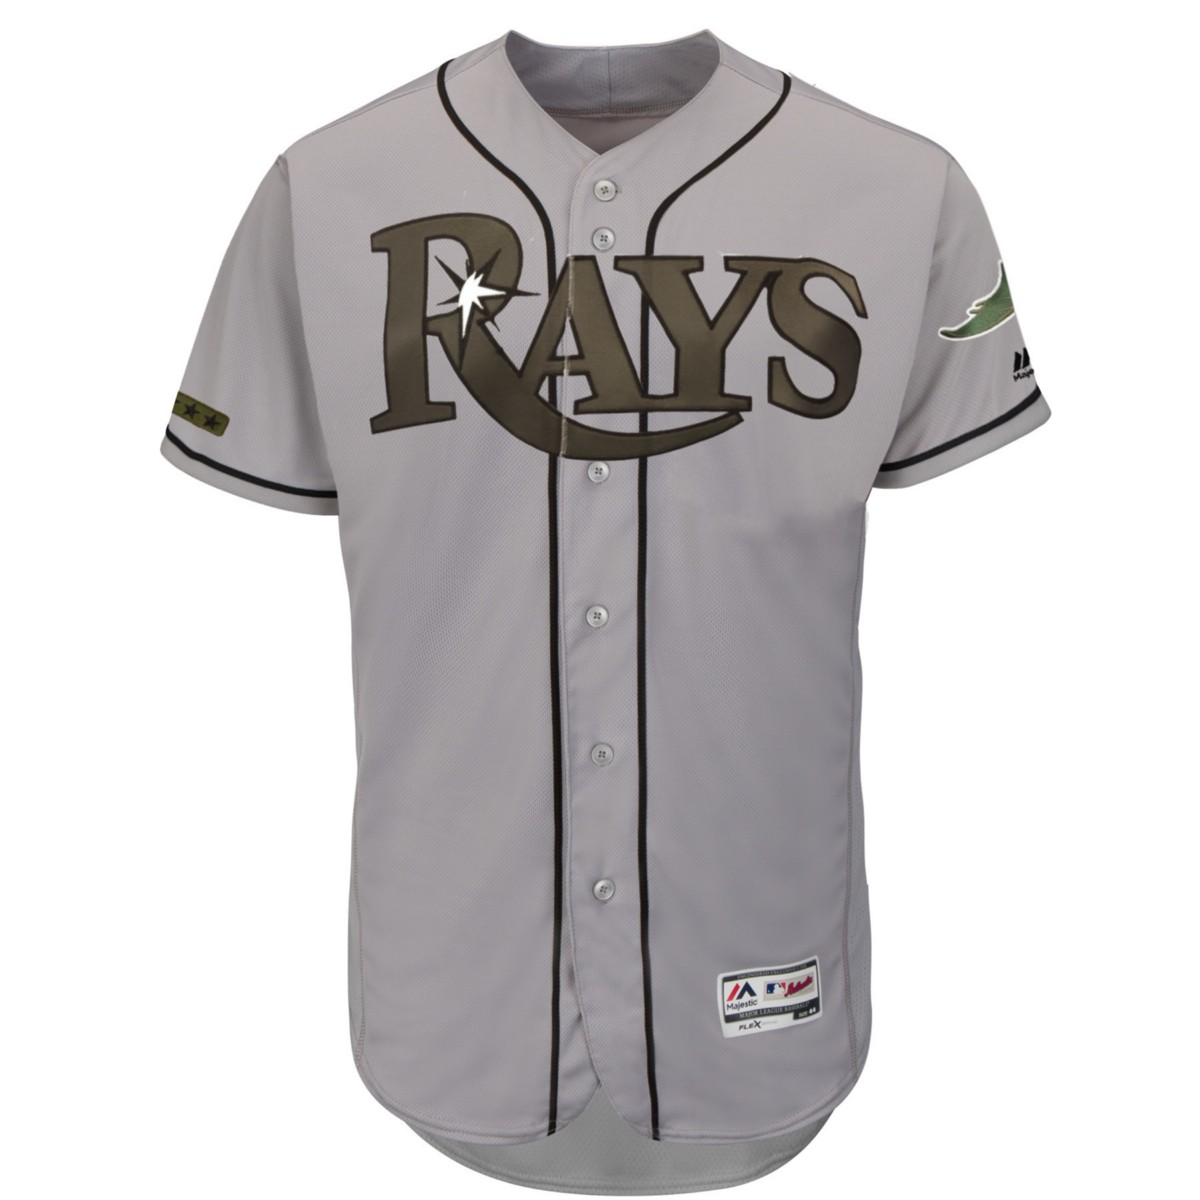 286b7ea99 MLB unveils special 2018 uniforms to be worn on field